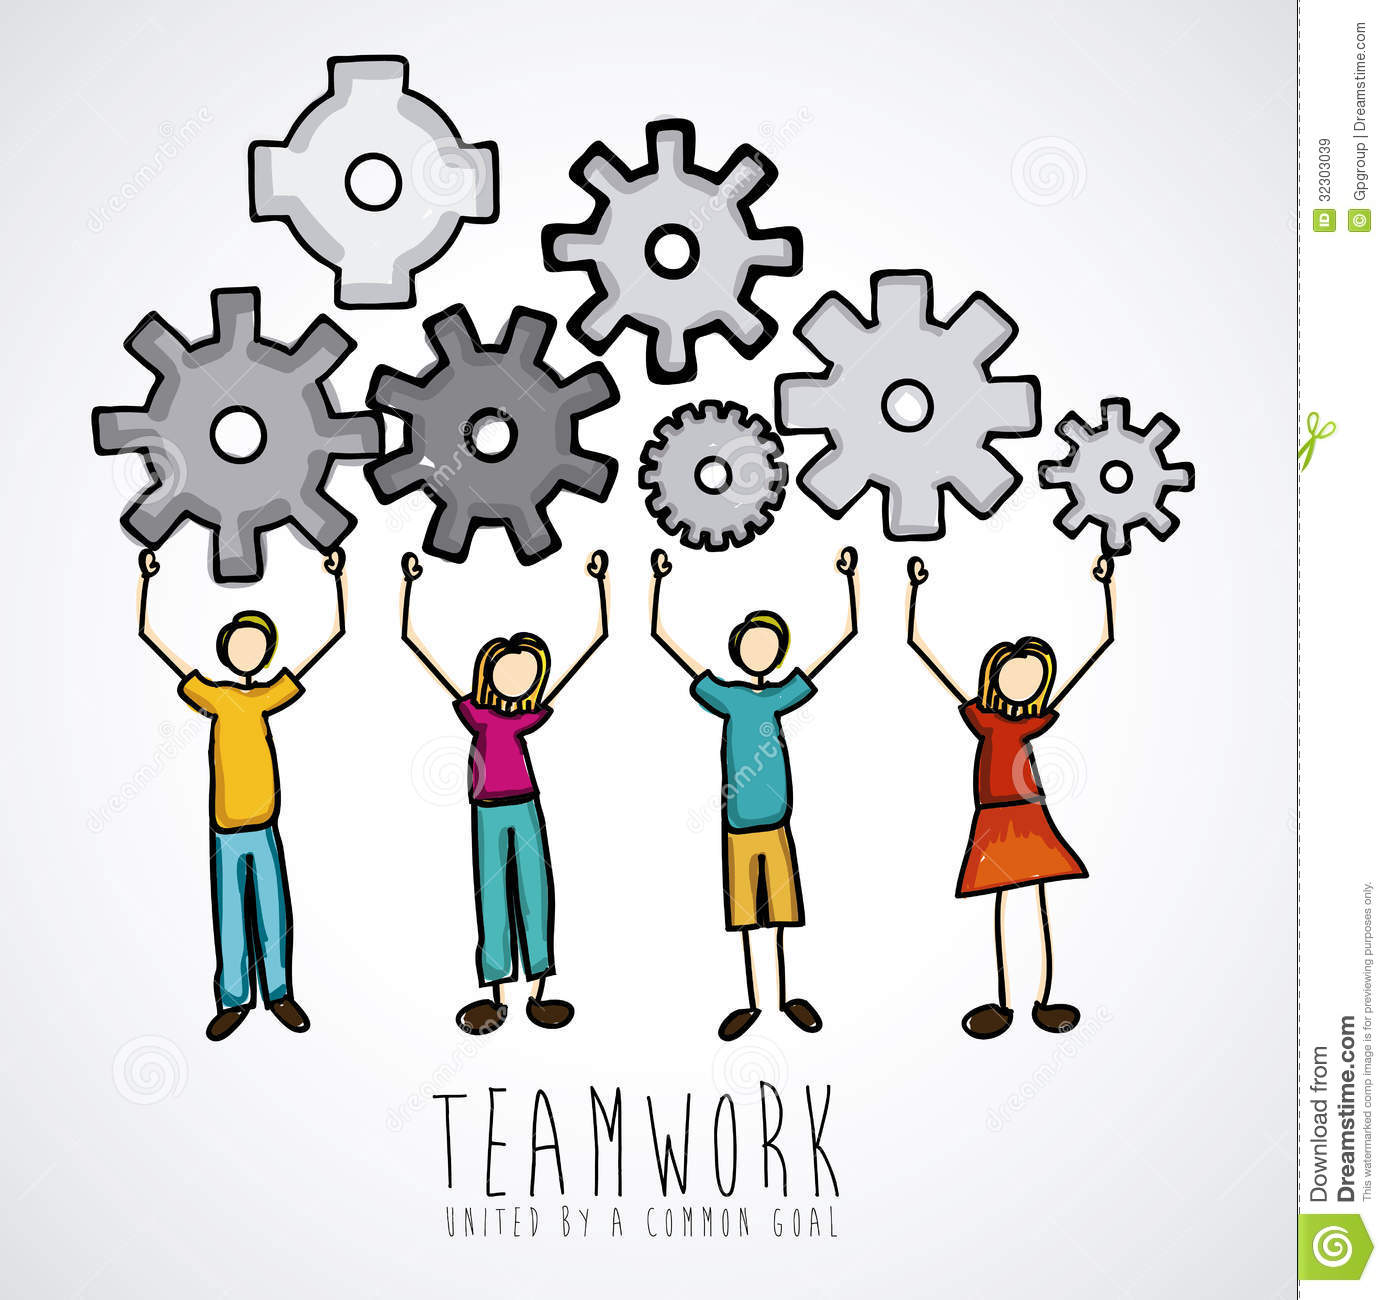 Teamwork Design Royalty Free Stock Images - Image: 32303039